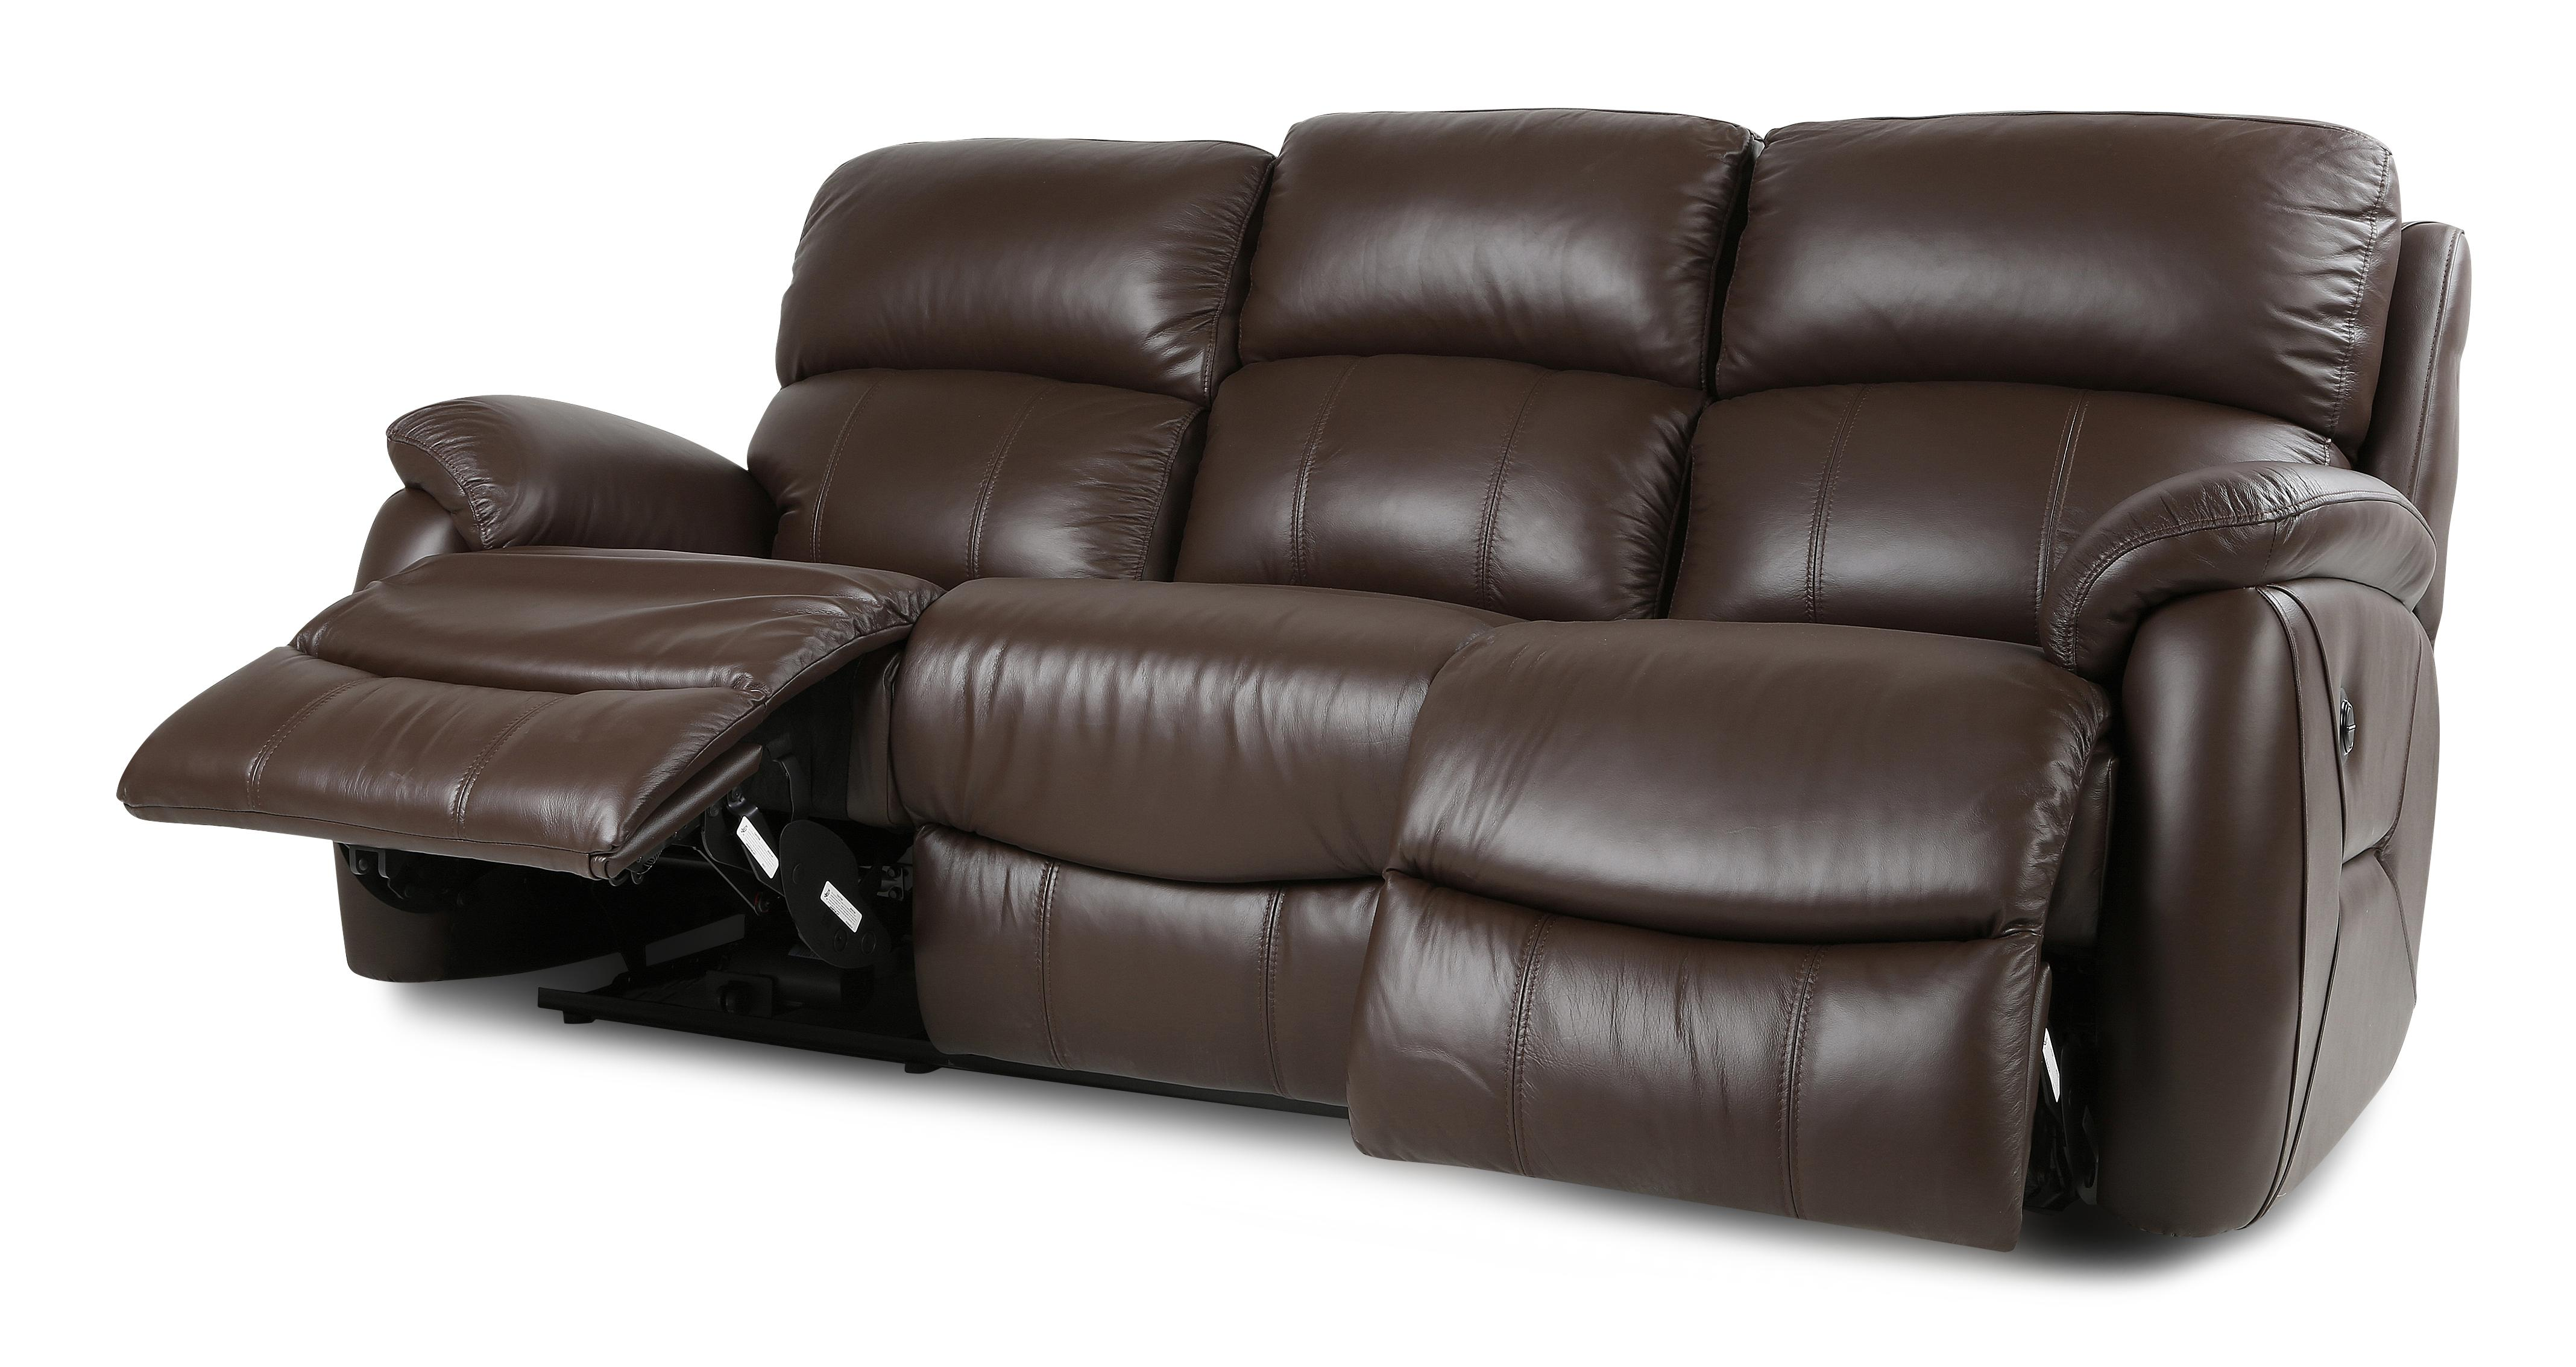 dfs recliner sofa bed bunk uk navona couch brown leather settee 3 seater power